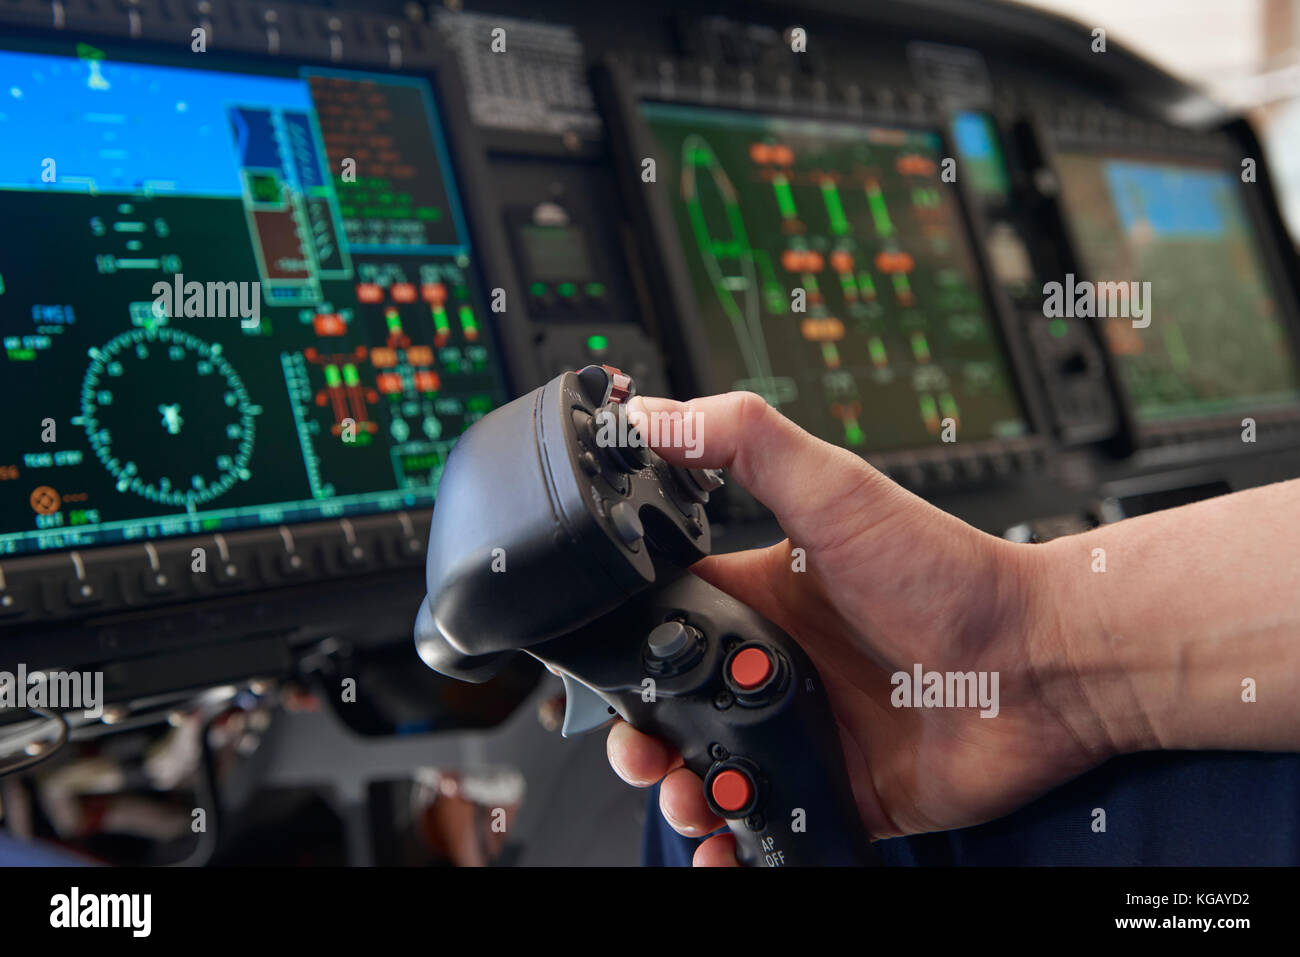 Close Up Pilot Holding Joystick In Helicopter Cockpit - Stock Image